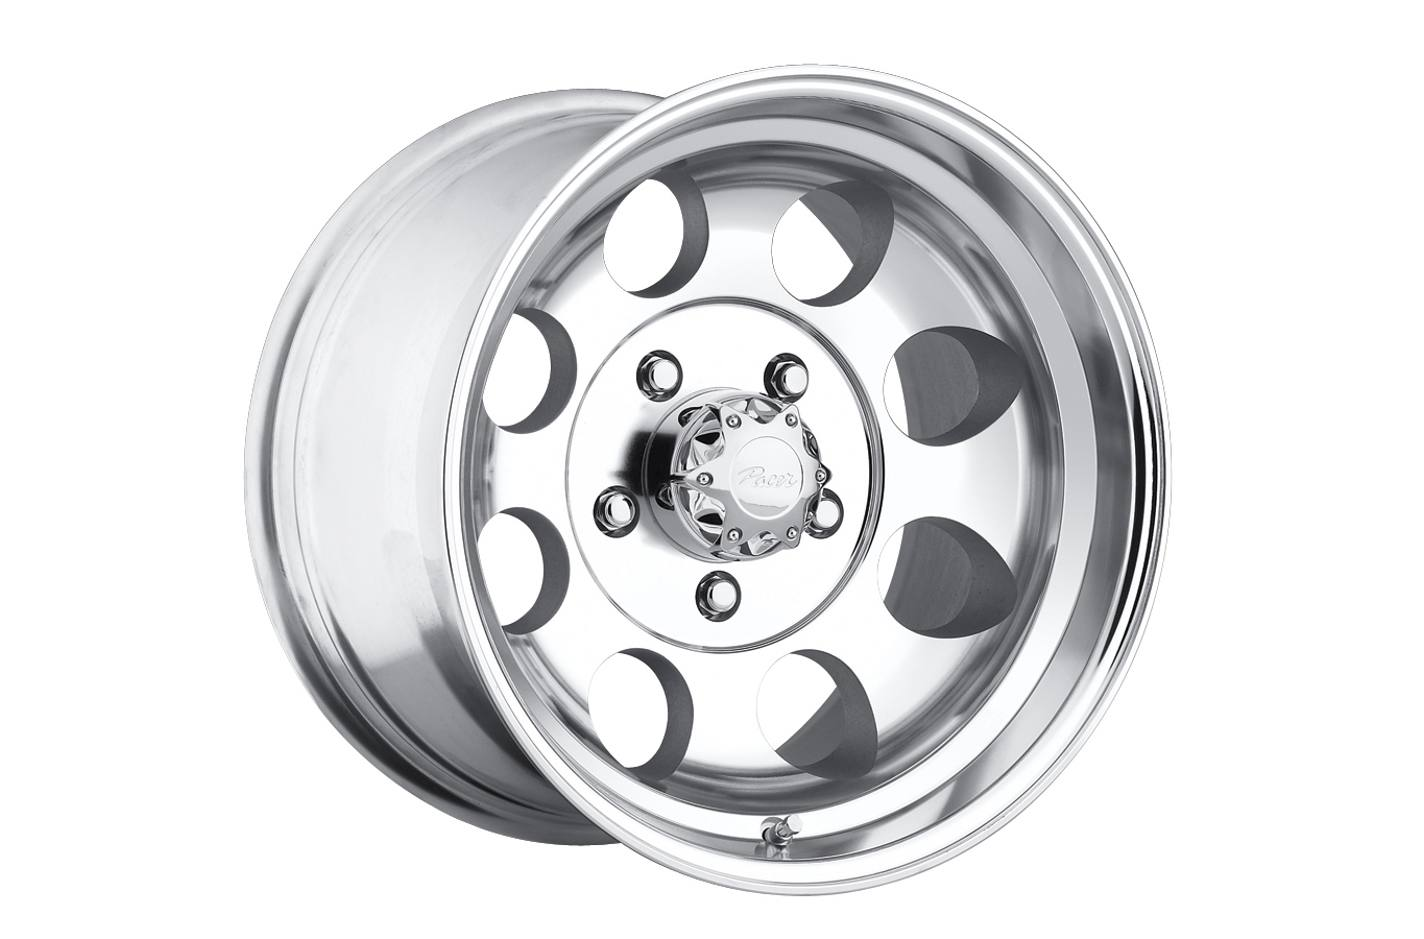 Pacer 187P WARRIOR 187P-5886 Single Rim 15X8-19mm OFFSET 6X114.3 Polished